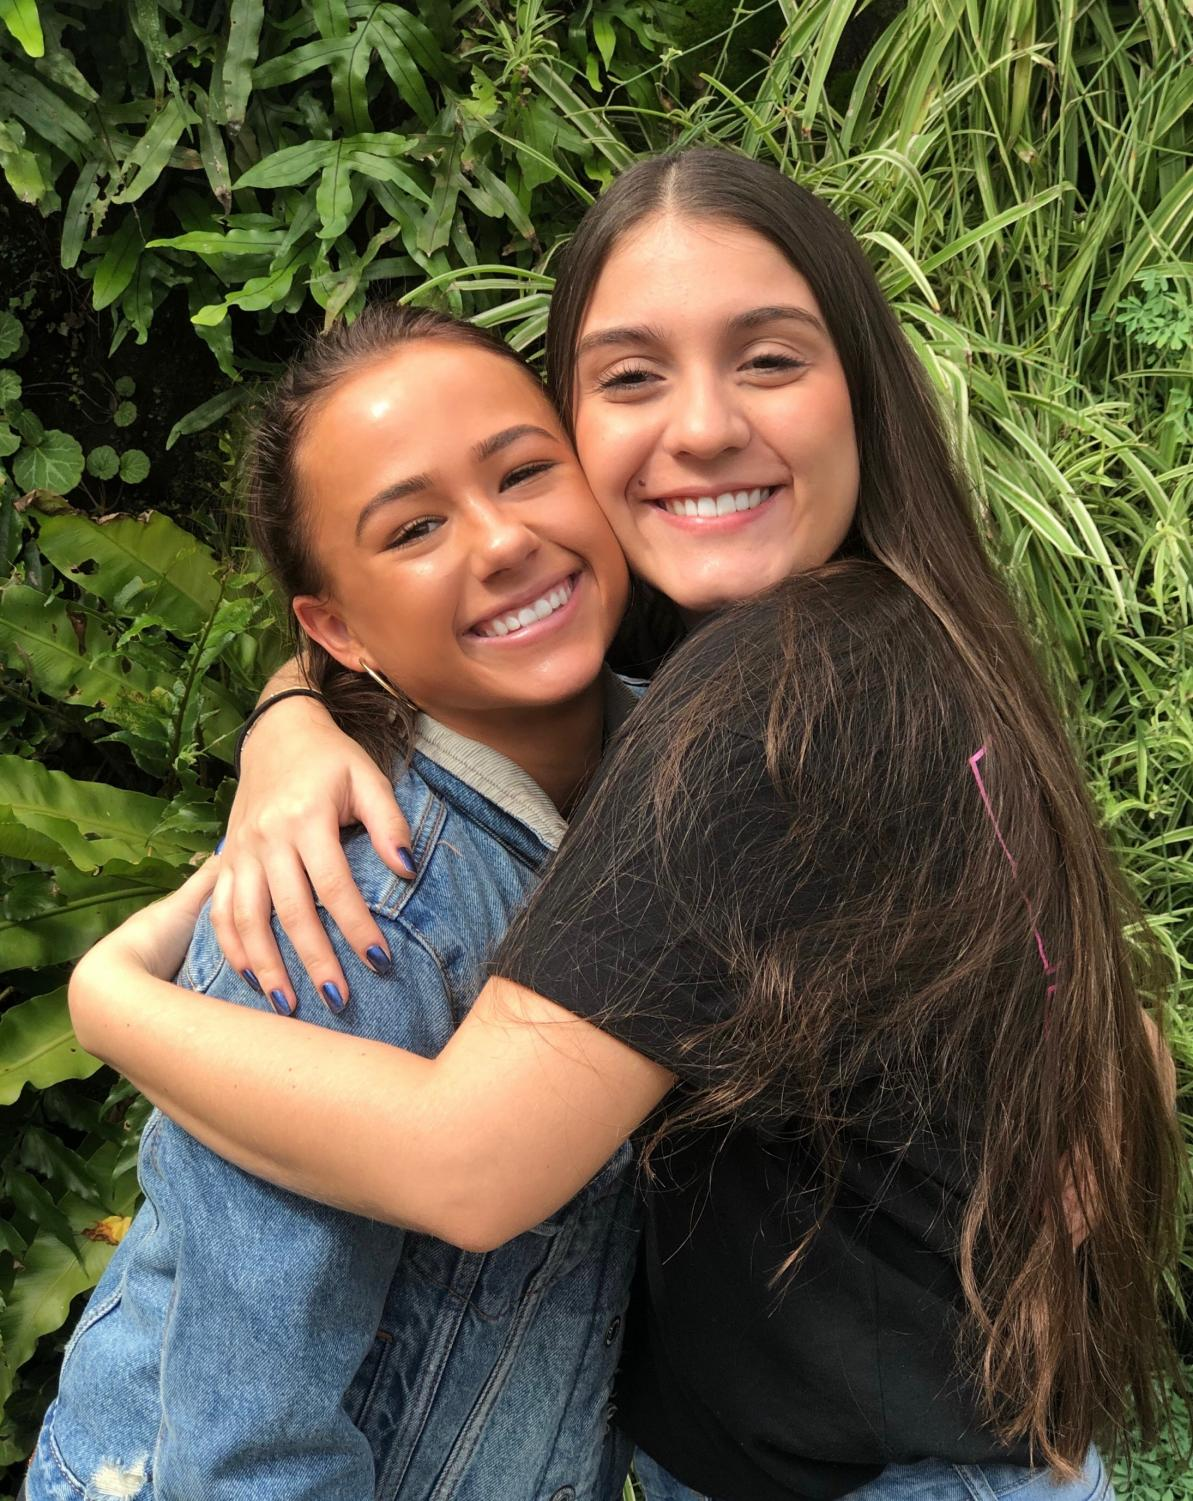 Dani Corrales, 12, has made new friends quickly during her semester at LCA. Ella Wilson, 12, is just one of them.